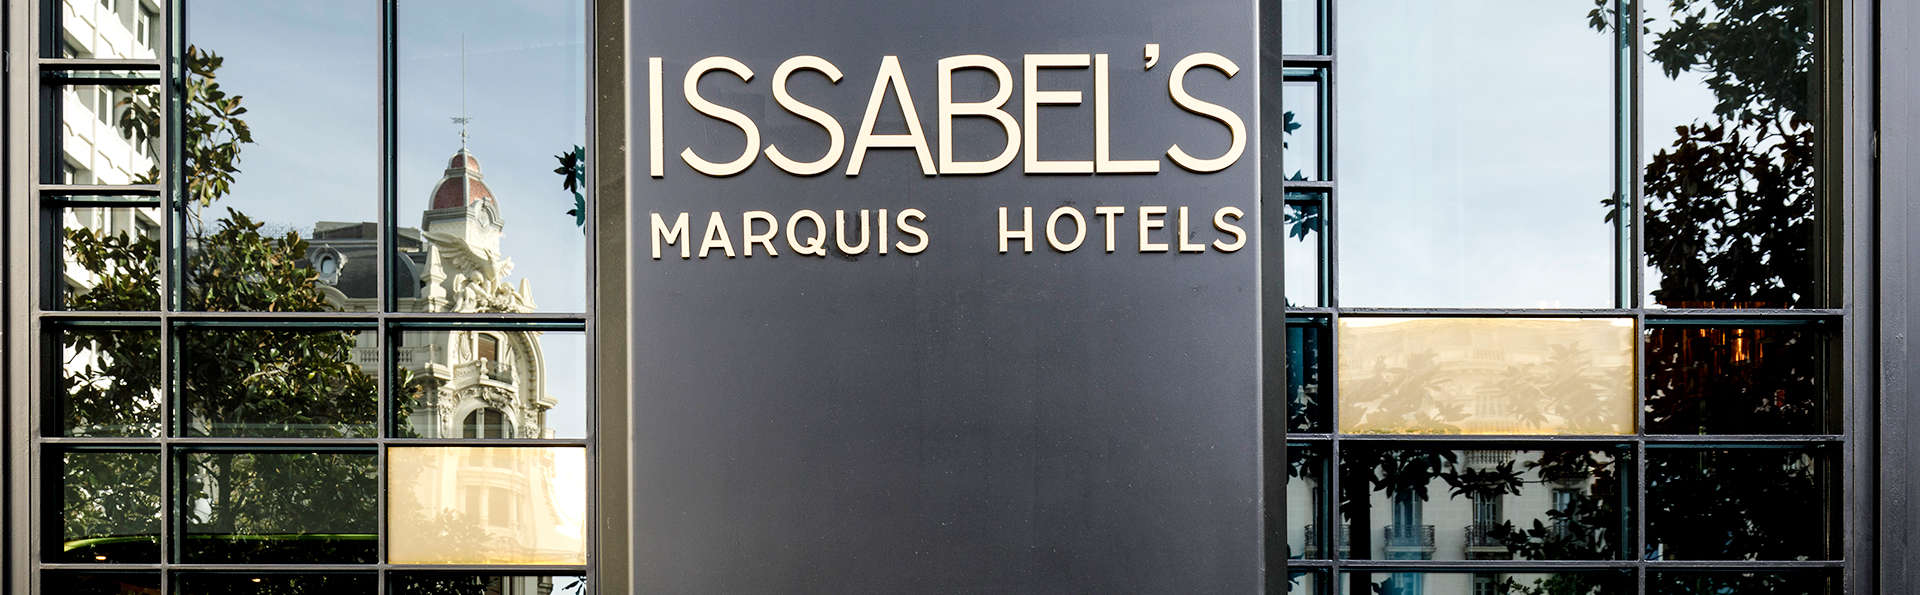 Marquis Hotels Issabel's - Edit_Detailc.jpg